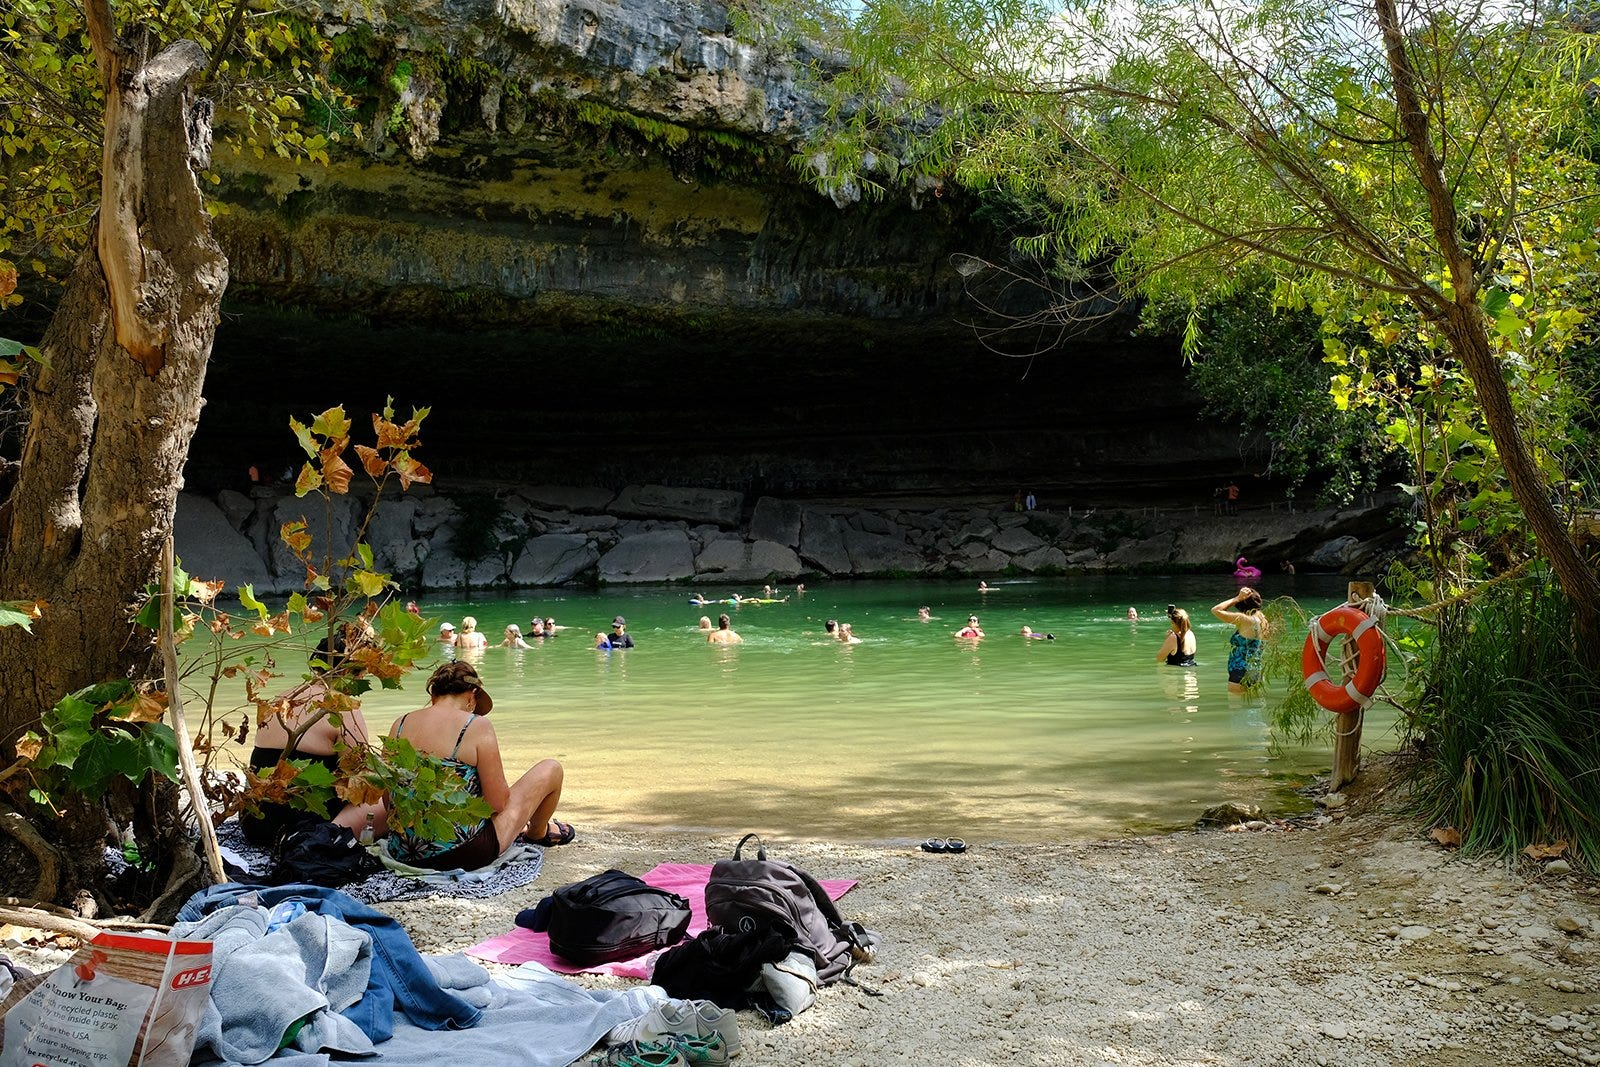 Is Hamilton Pool open? Swimming hole near Austin closed after freeze